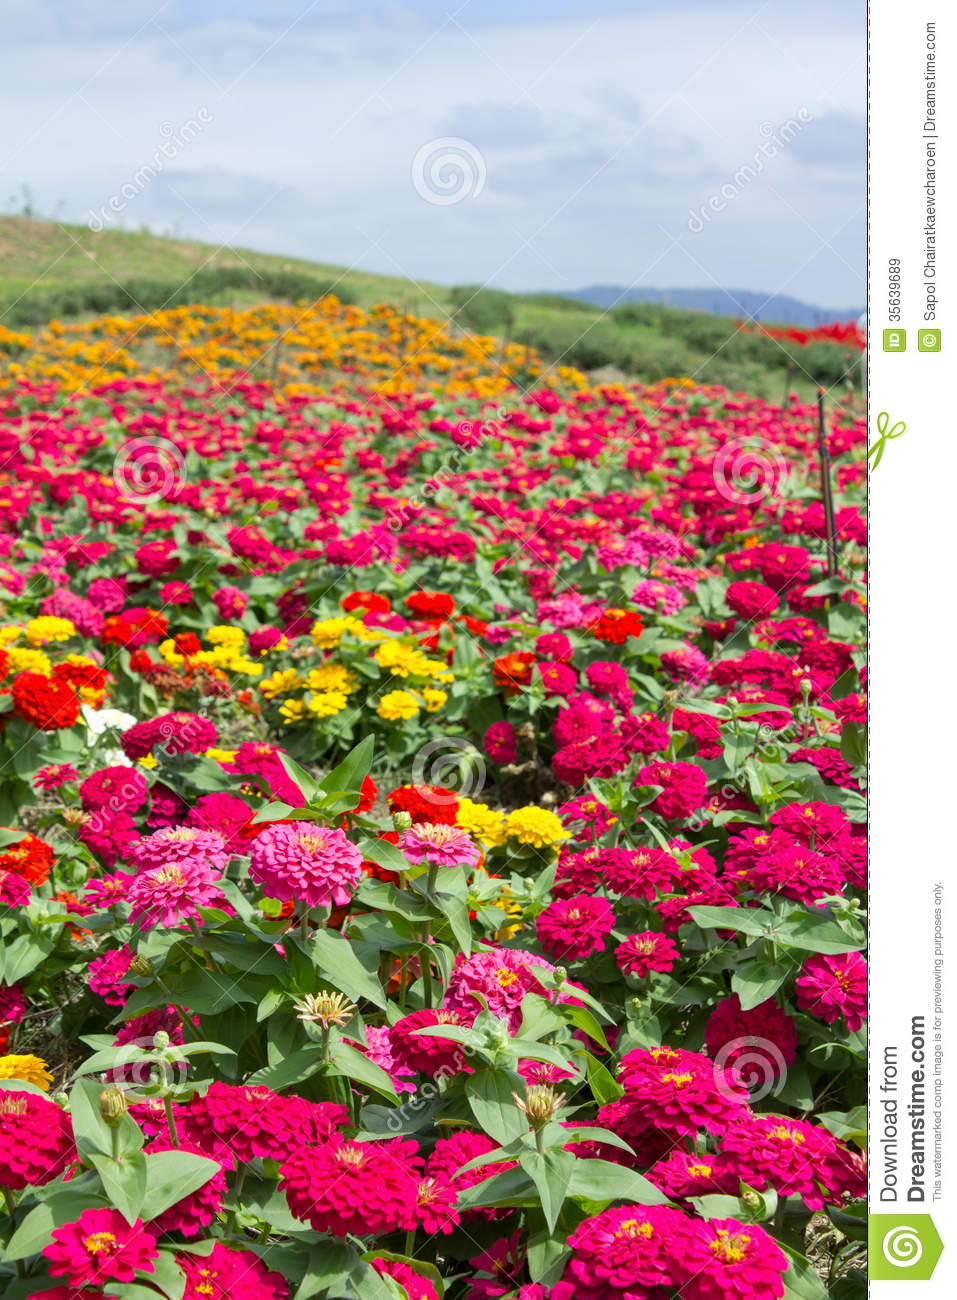 Garden Dreams Flowers Field Are Blooming Royalty Free Stock Images